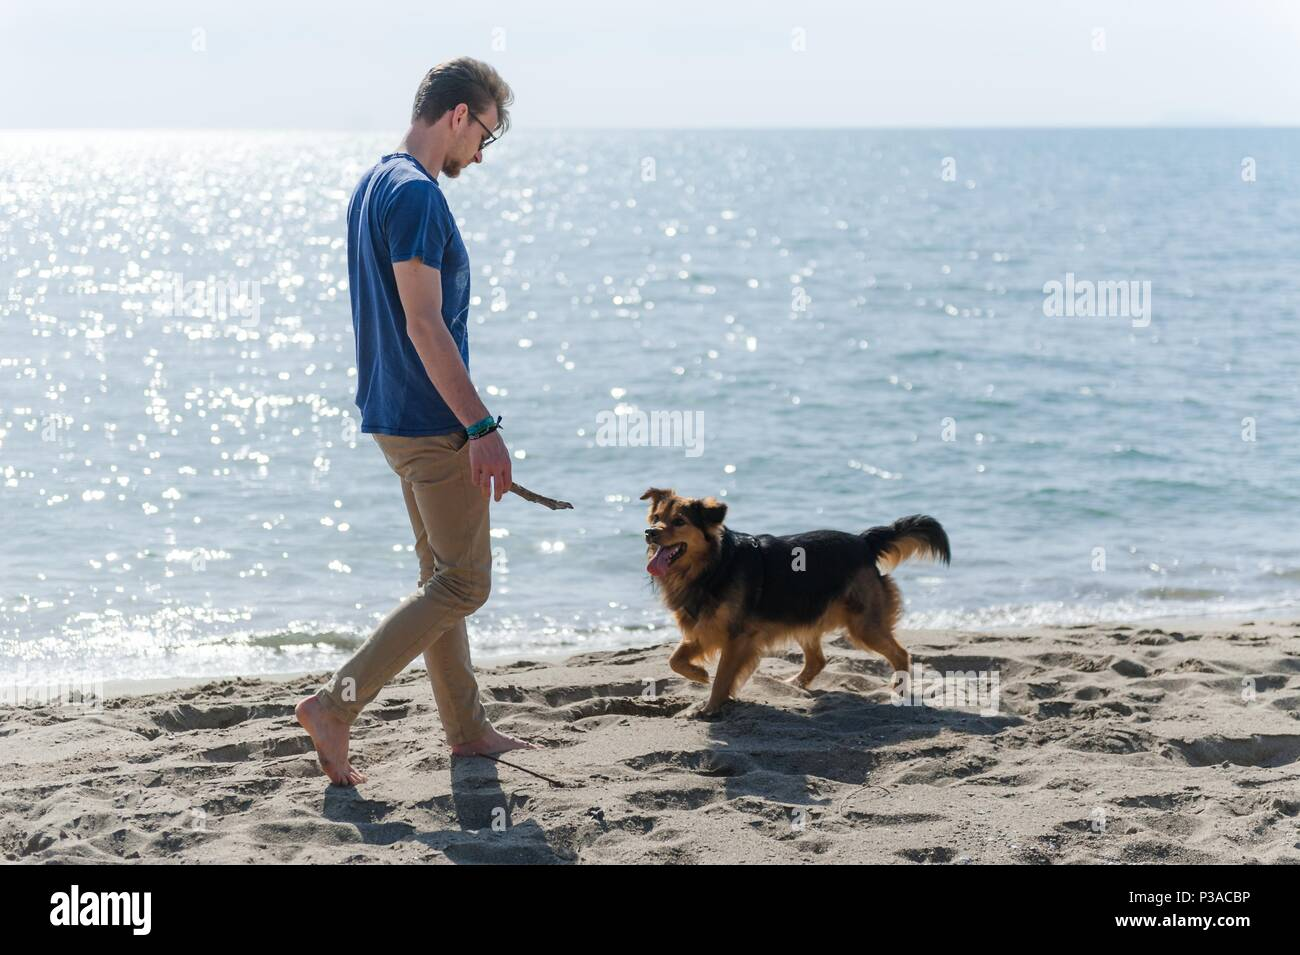 Young caucasian male playing with dog on beach. Man and dog having fun on seaside - Stock Image